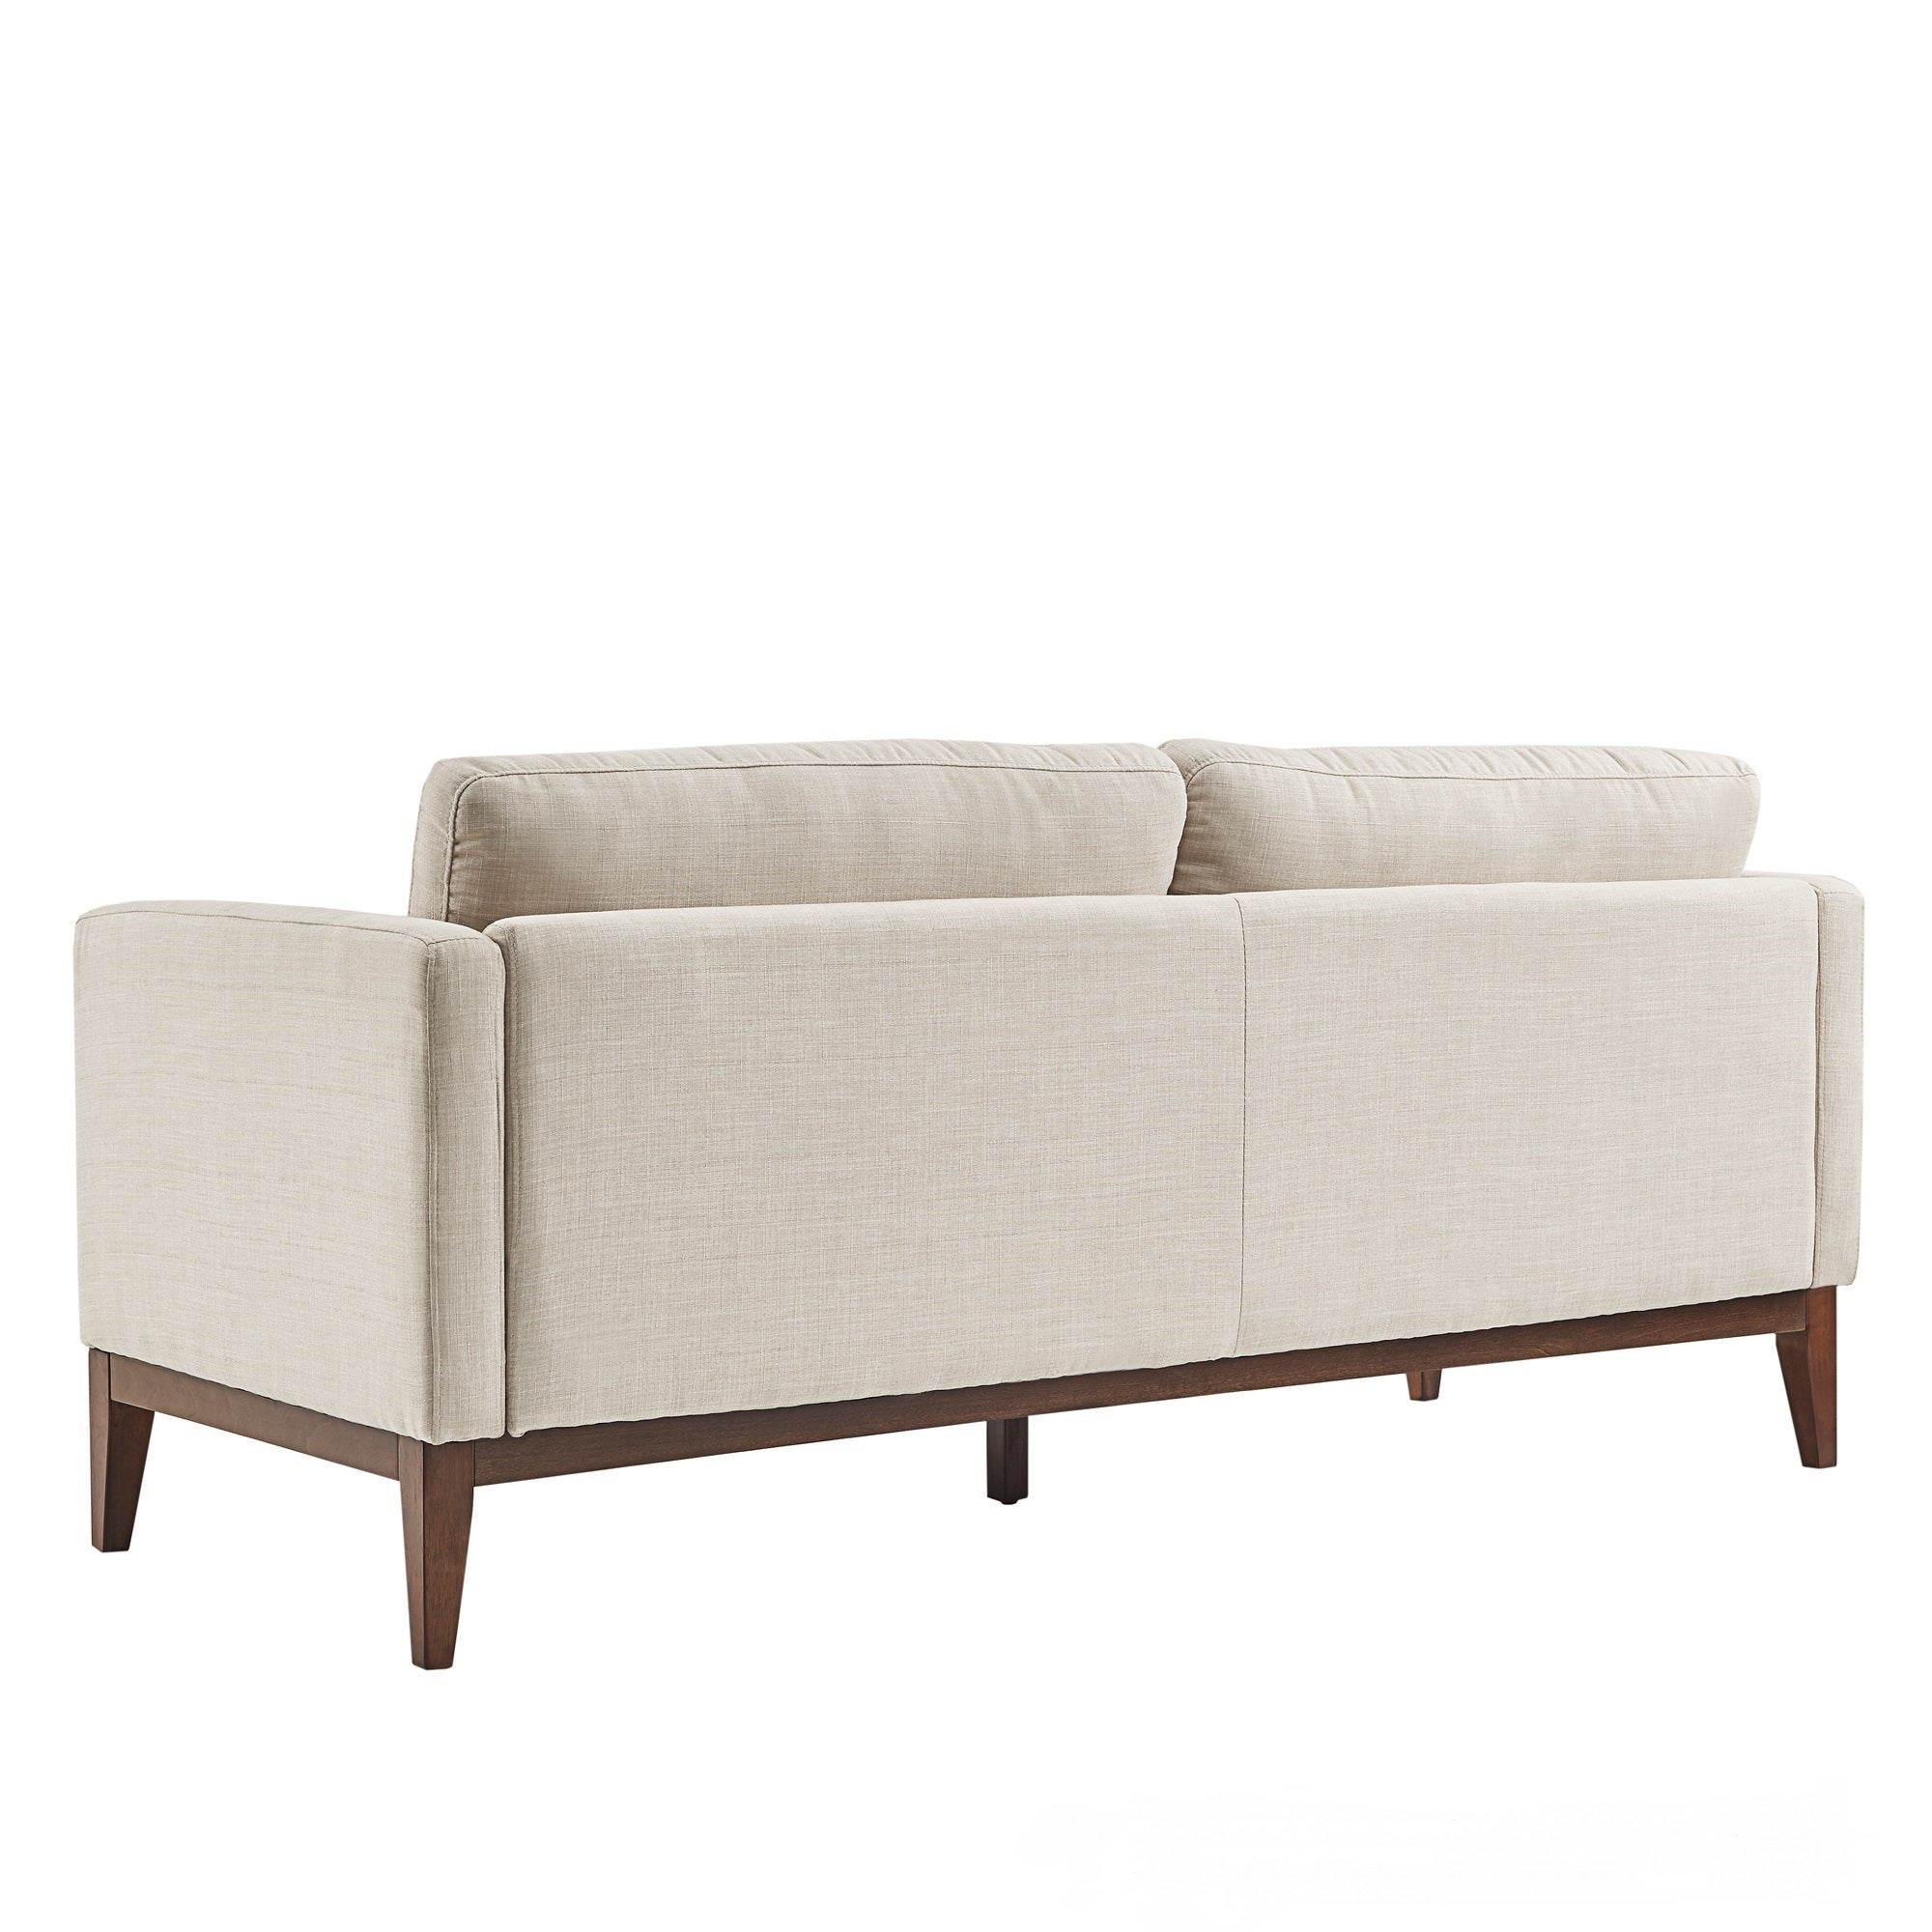 Shop Vail Linen Upholstered Sofa And Loveseat By Inspire Q Modern